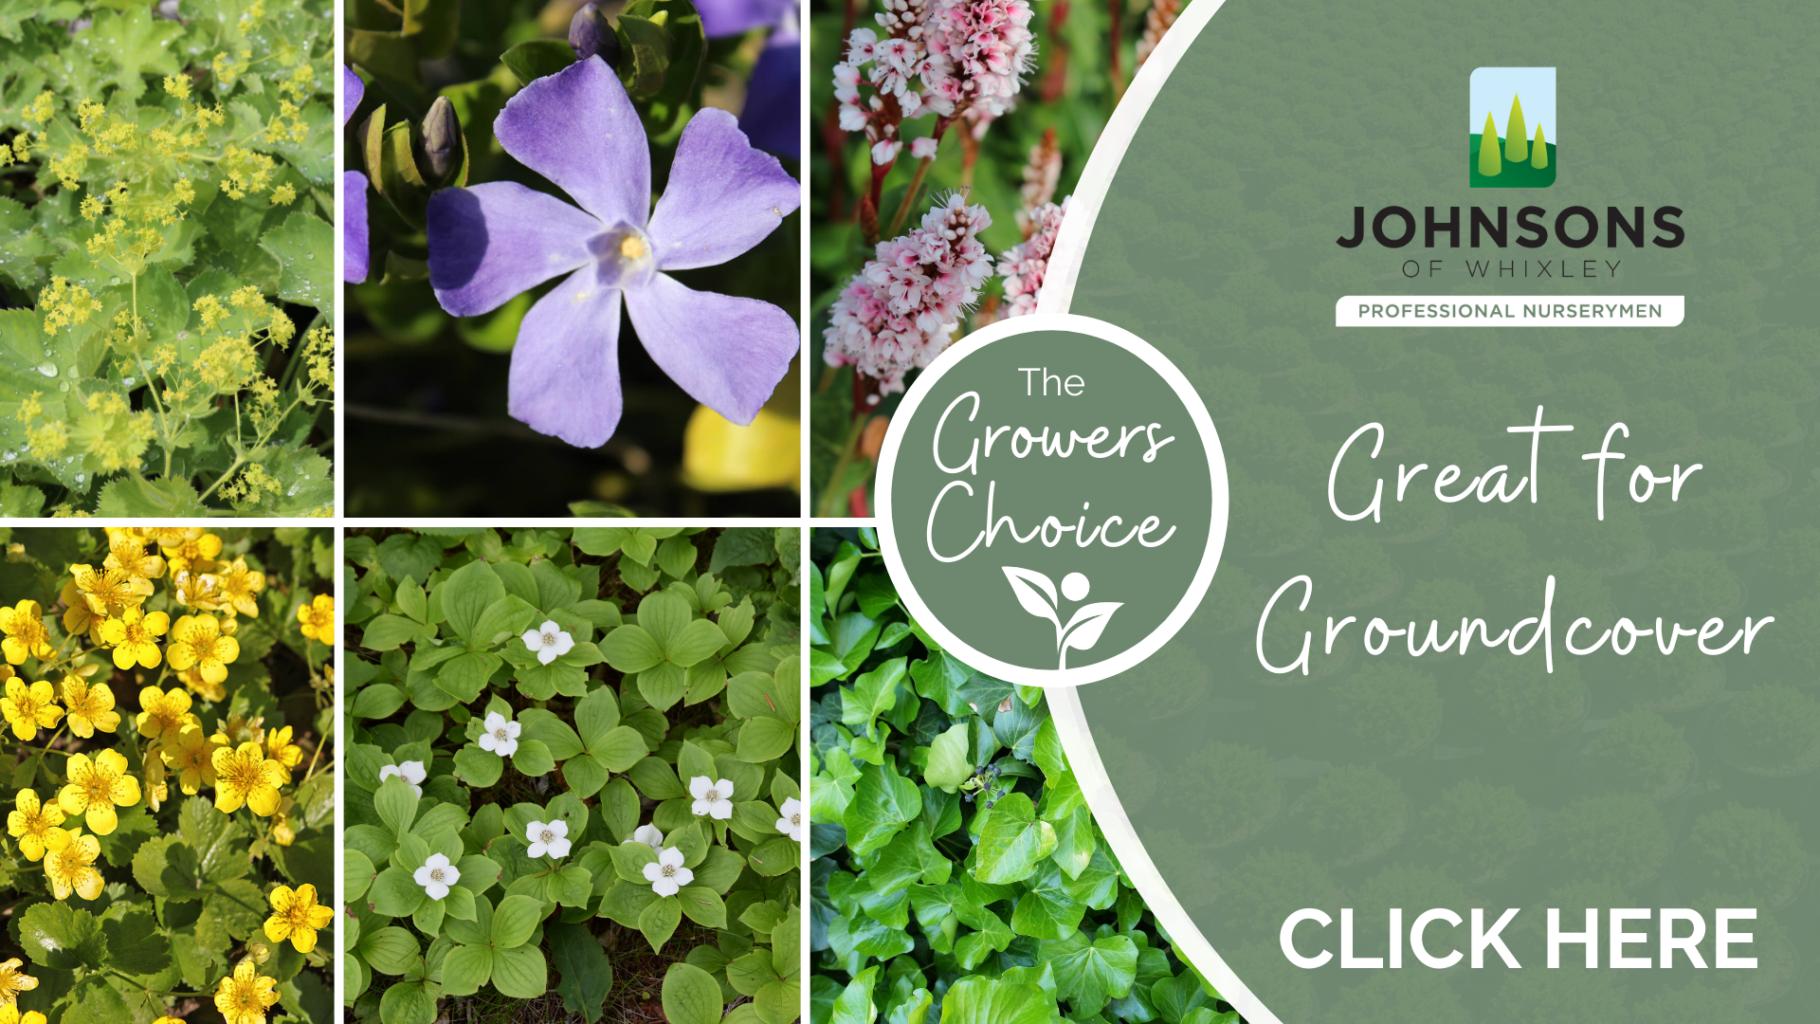 The Growers Choice: Ground cover plants